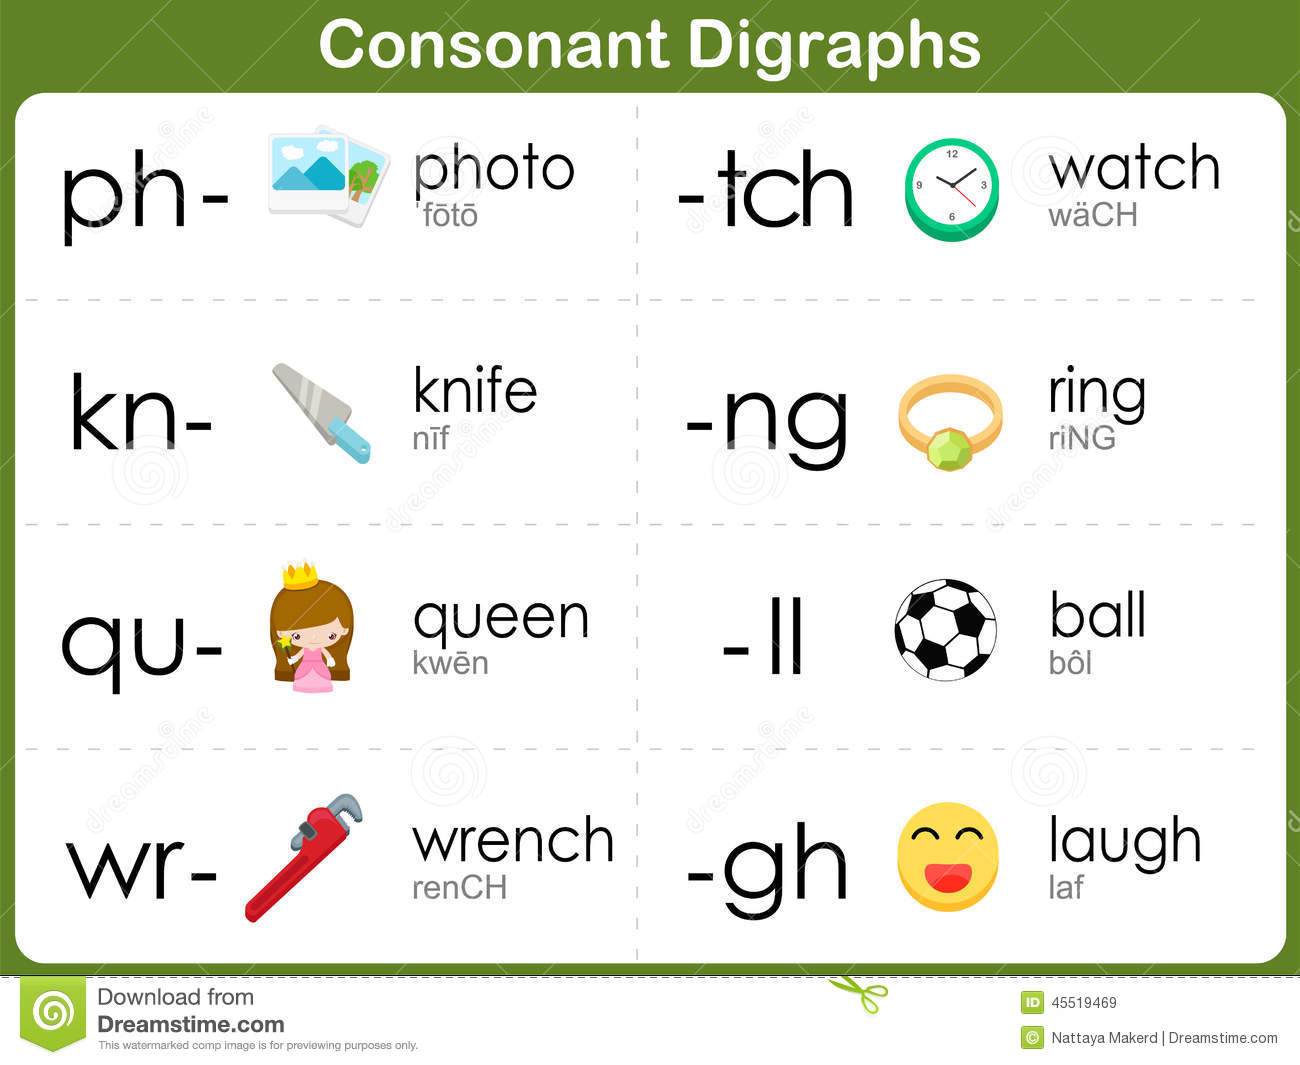 Consonant Blends Worksheet For Kids Stock Vector - Image: 45519469